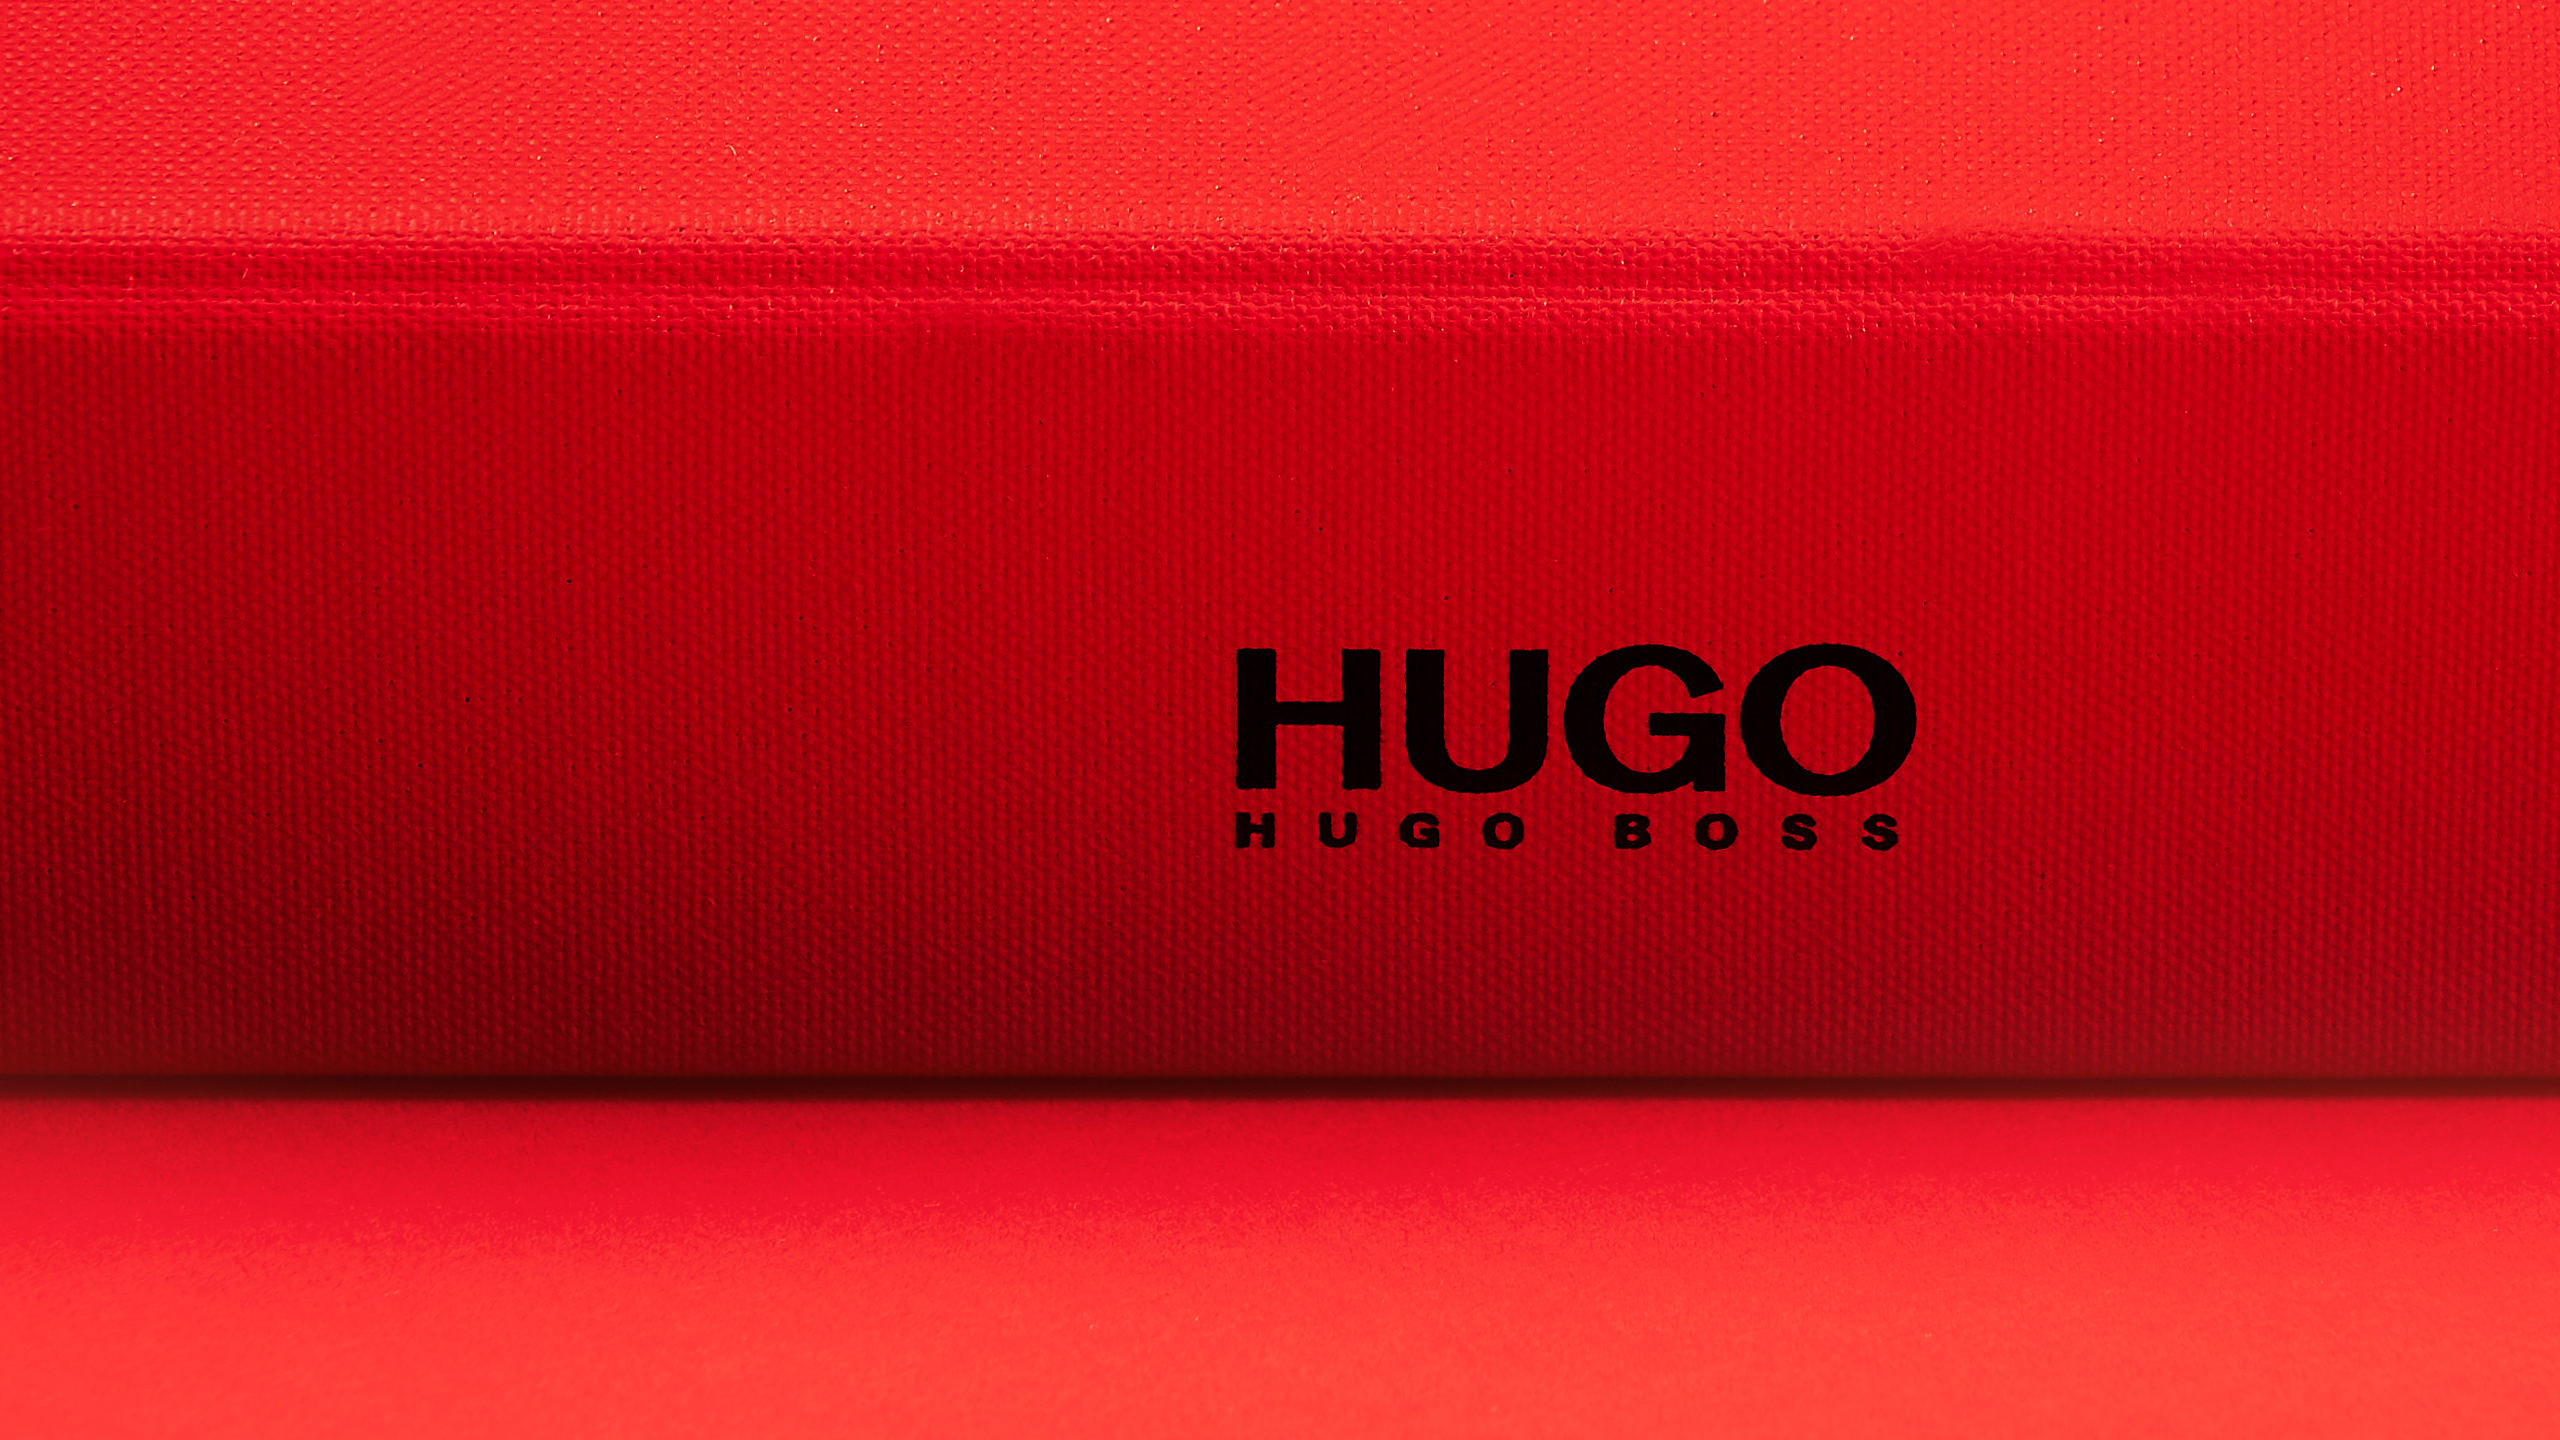 Hugo_Layout_5_2560 x1440